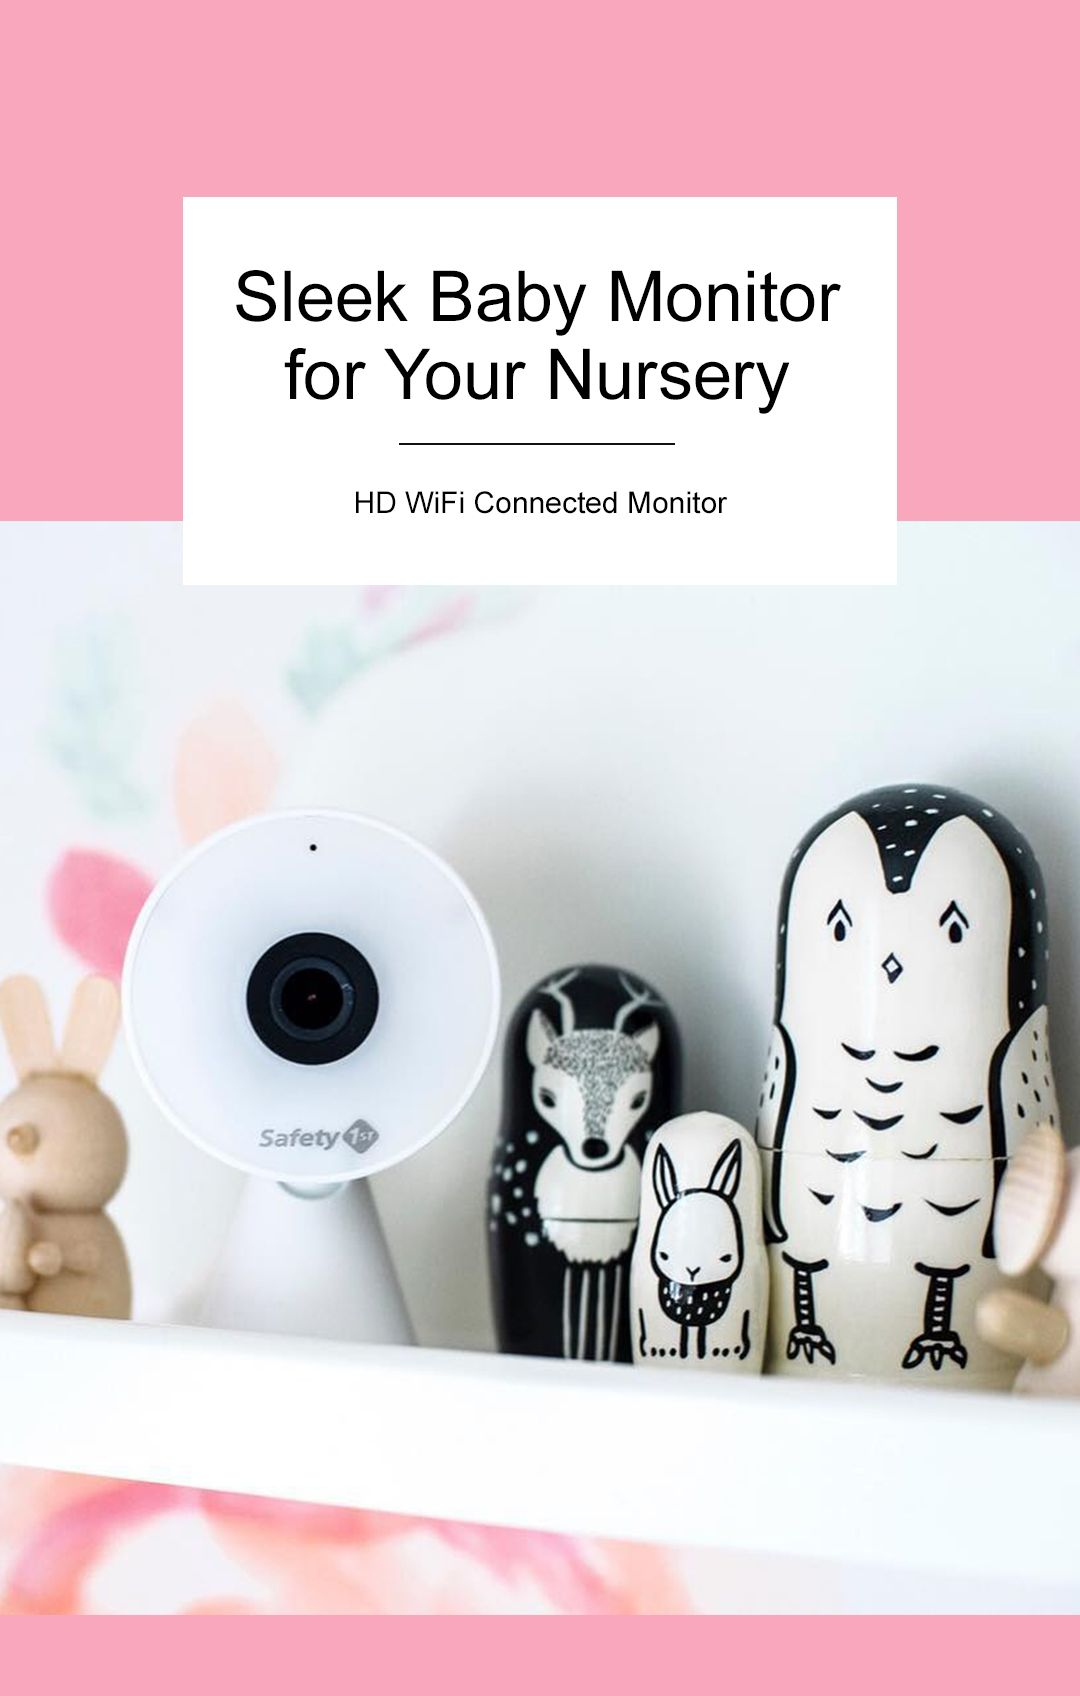 Hook our HD WiFi Connected Monitor to your smart phone or